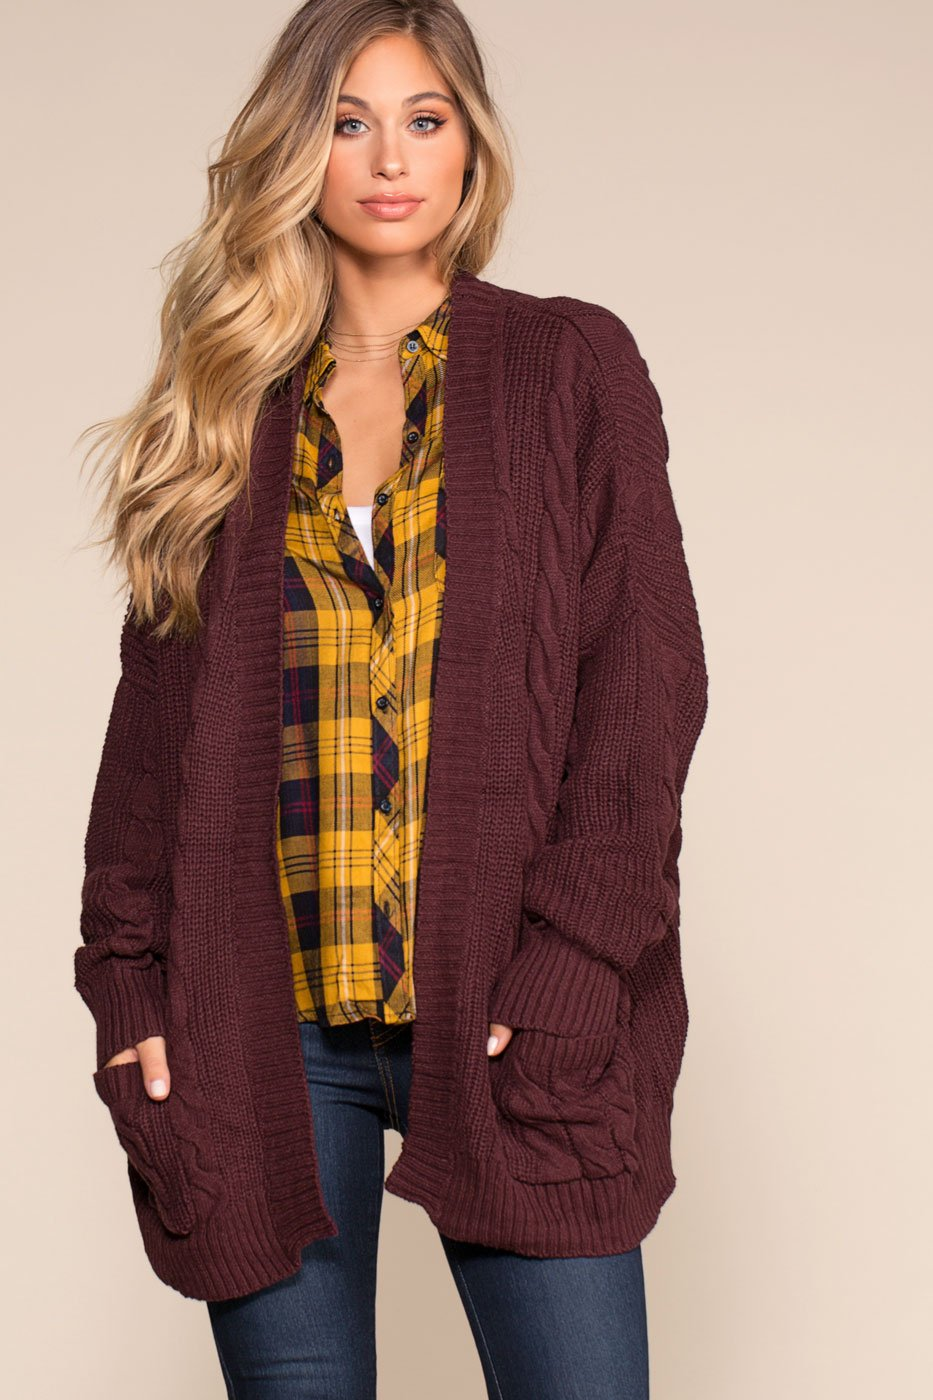 de4284deb52 Cozy Cable Oversized Cardigan Sweater - Burgundy